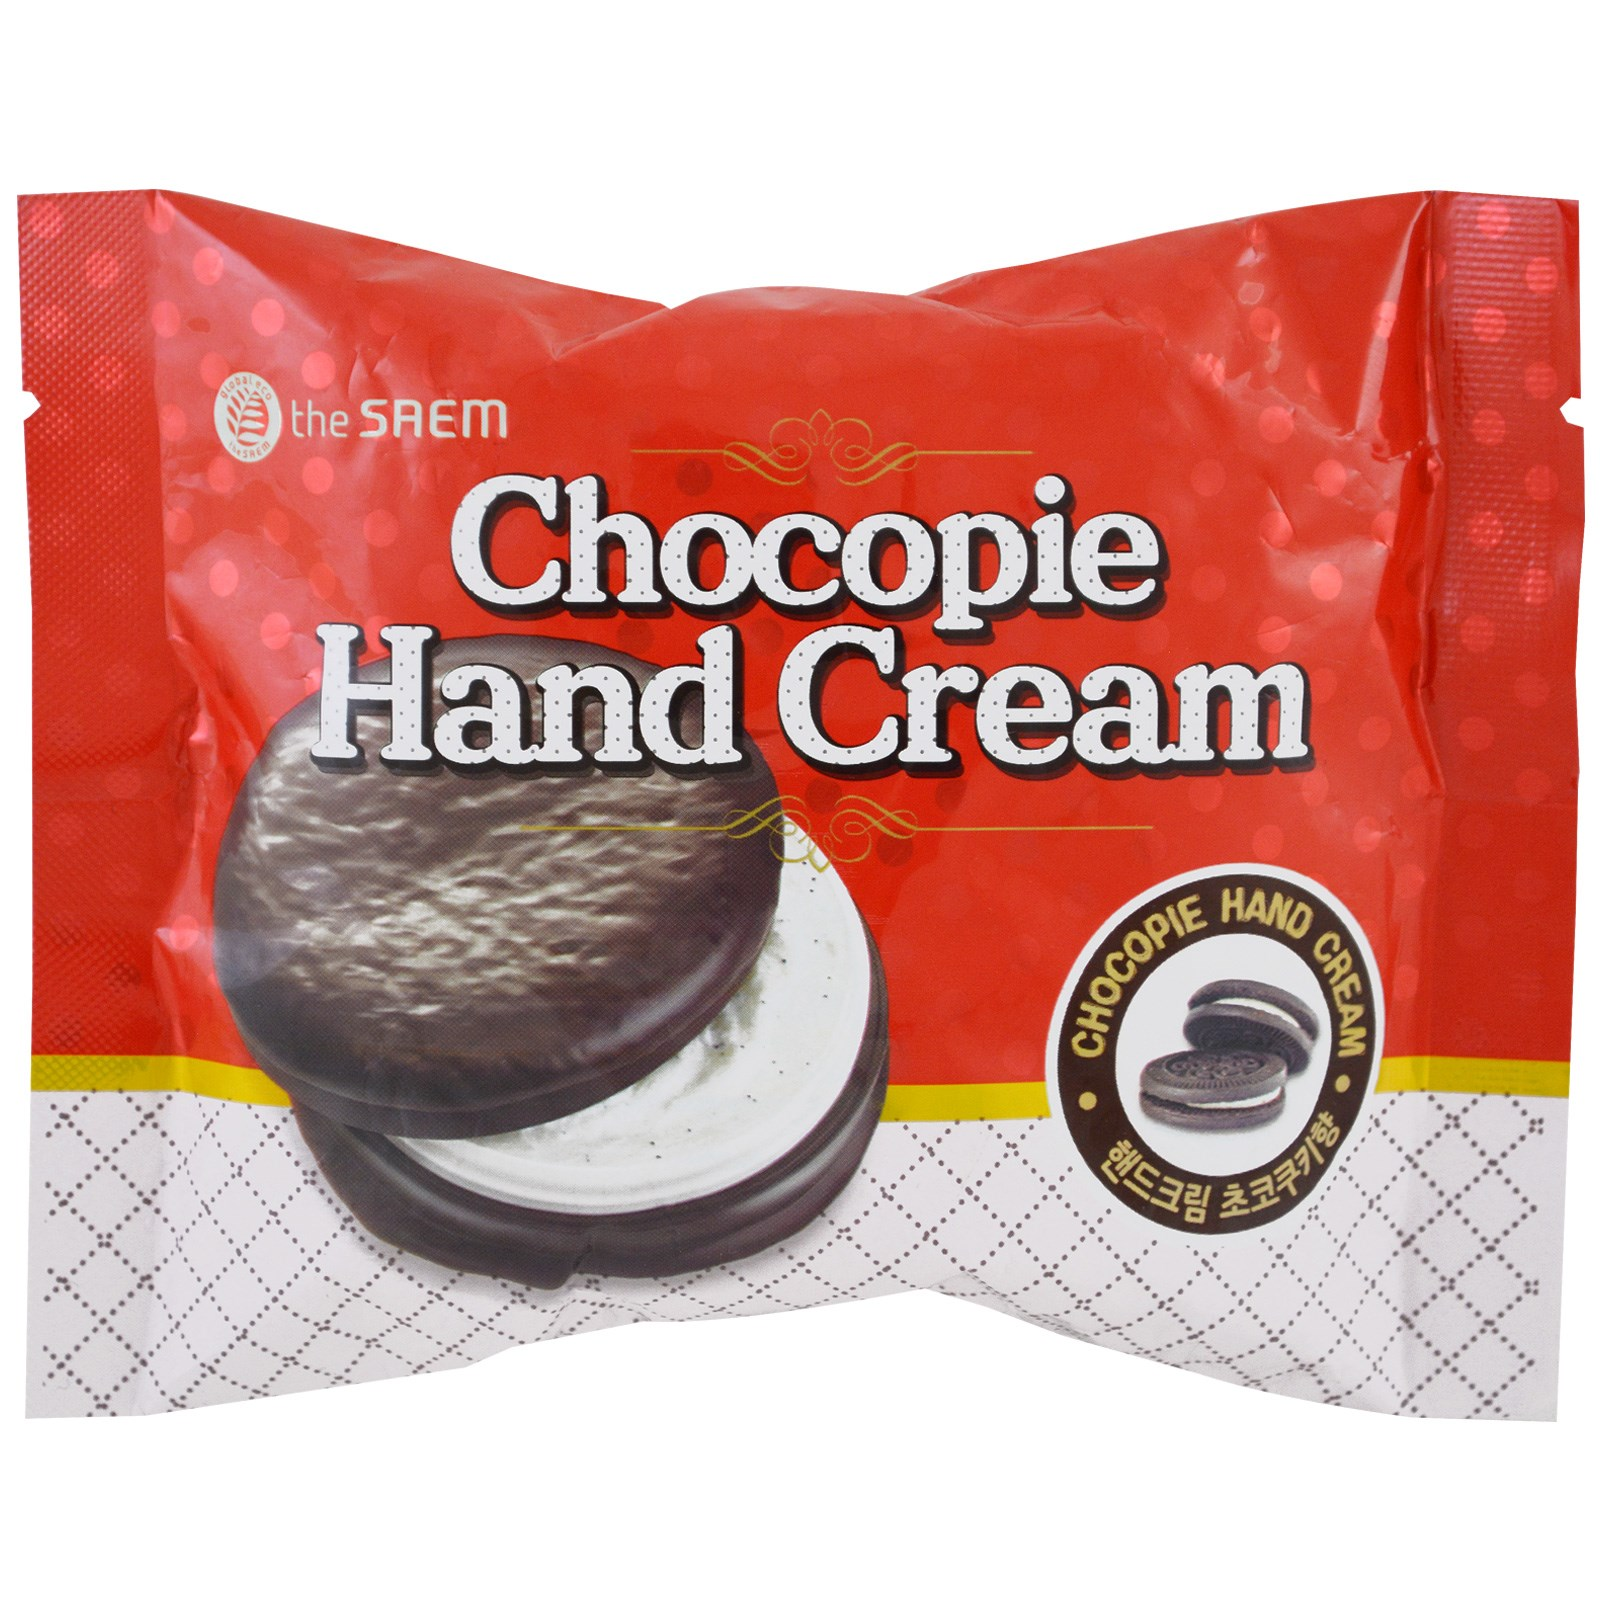 The Saem, Chocopie Hand Cream, Cookies & Cream, 1.18 fl oz (35 ml)